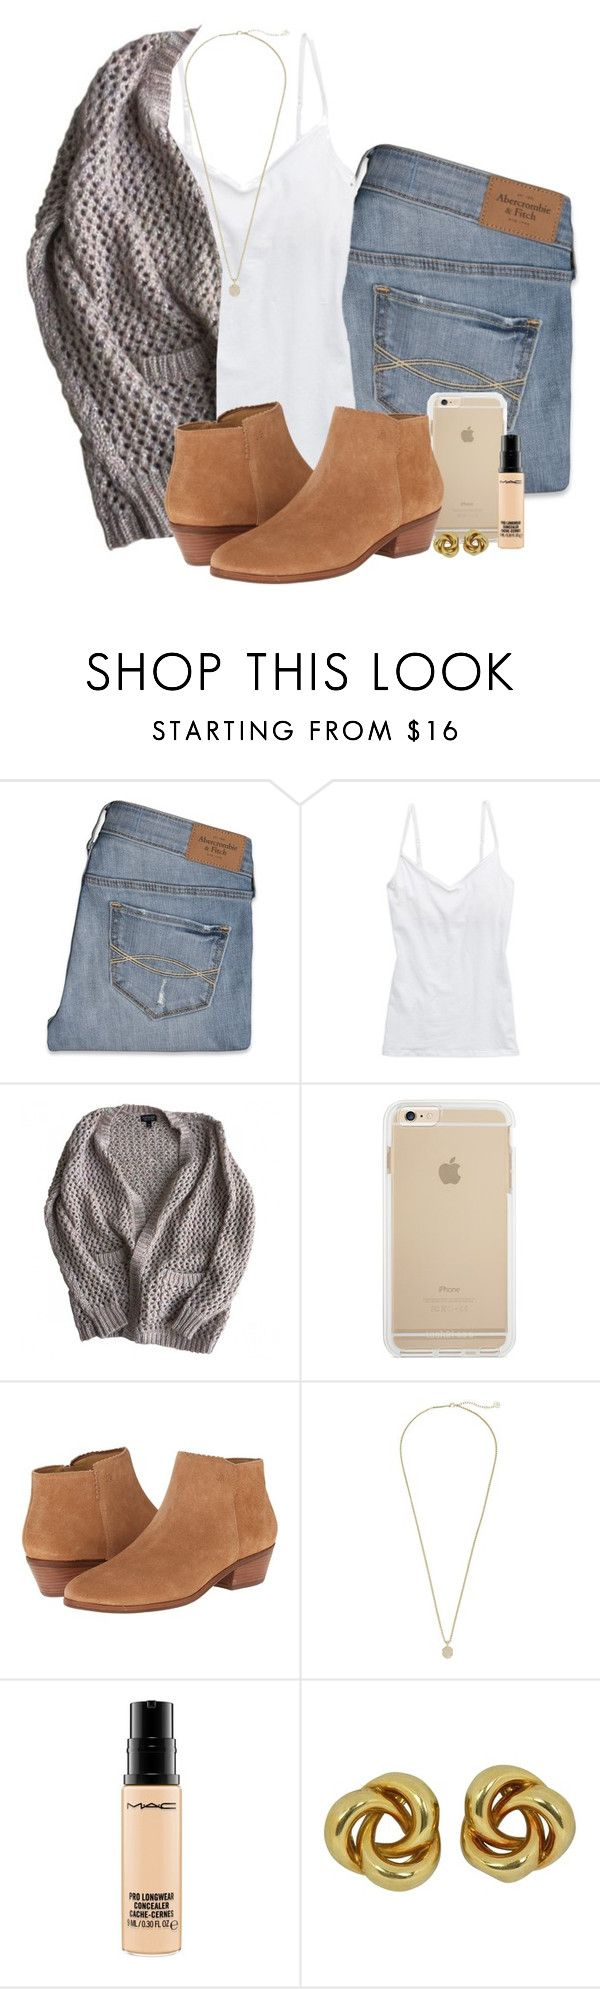 """Ootd// haircut "" by madelyn-abigail ❤ liked on Polyvore featuring Abercrombie & Fitch, American Eagle Outfitters, Topshop, Jack Rogers, Kendra Scott and MAC Cosmetics"